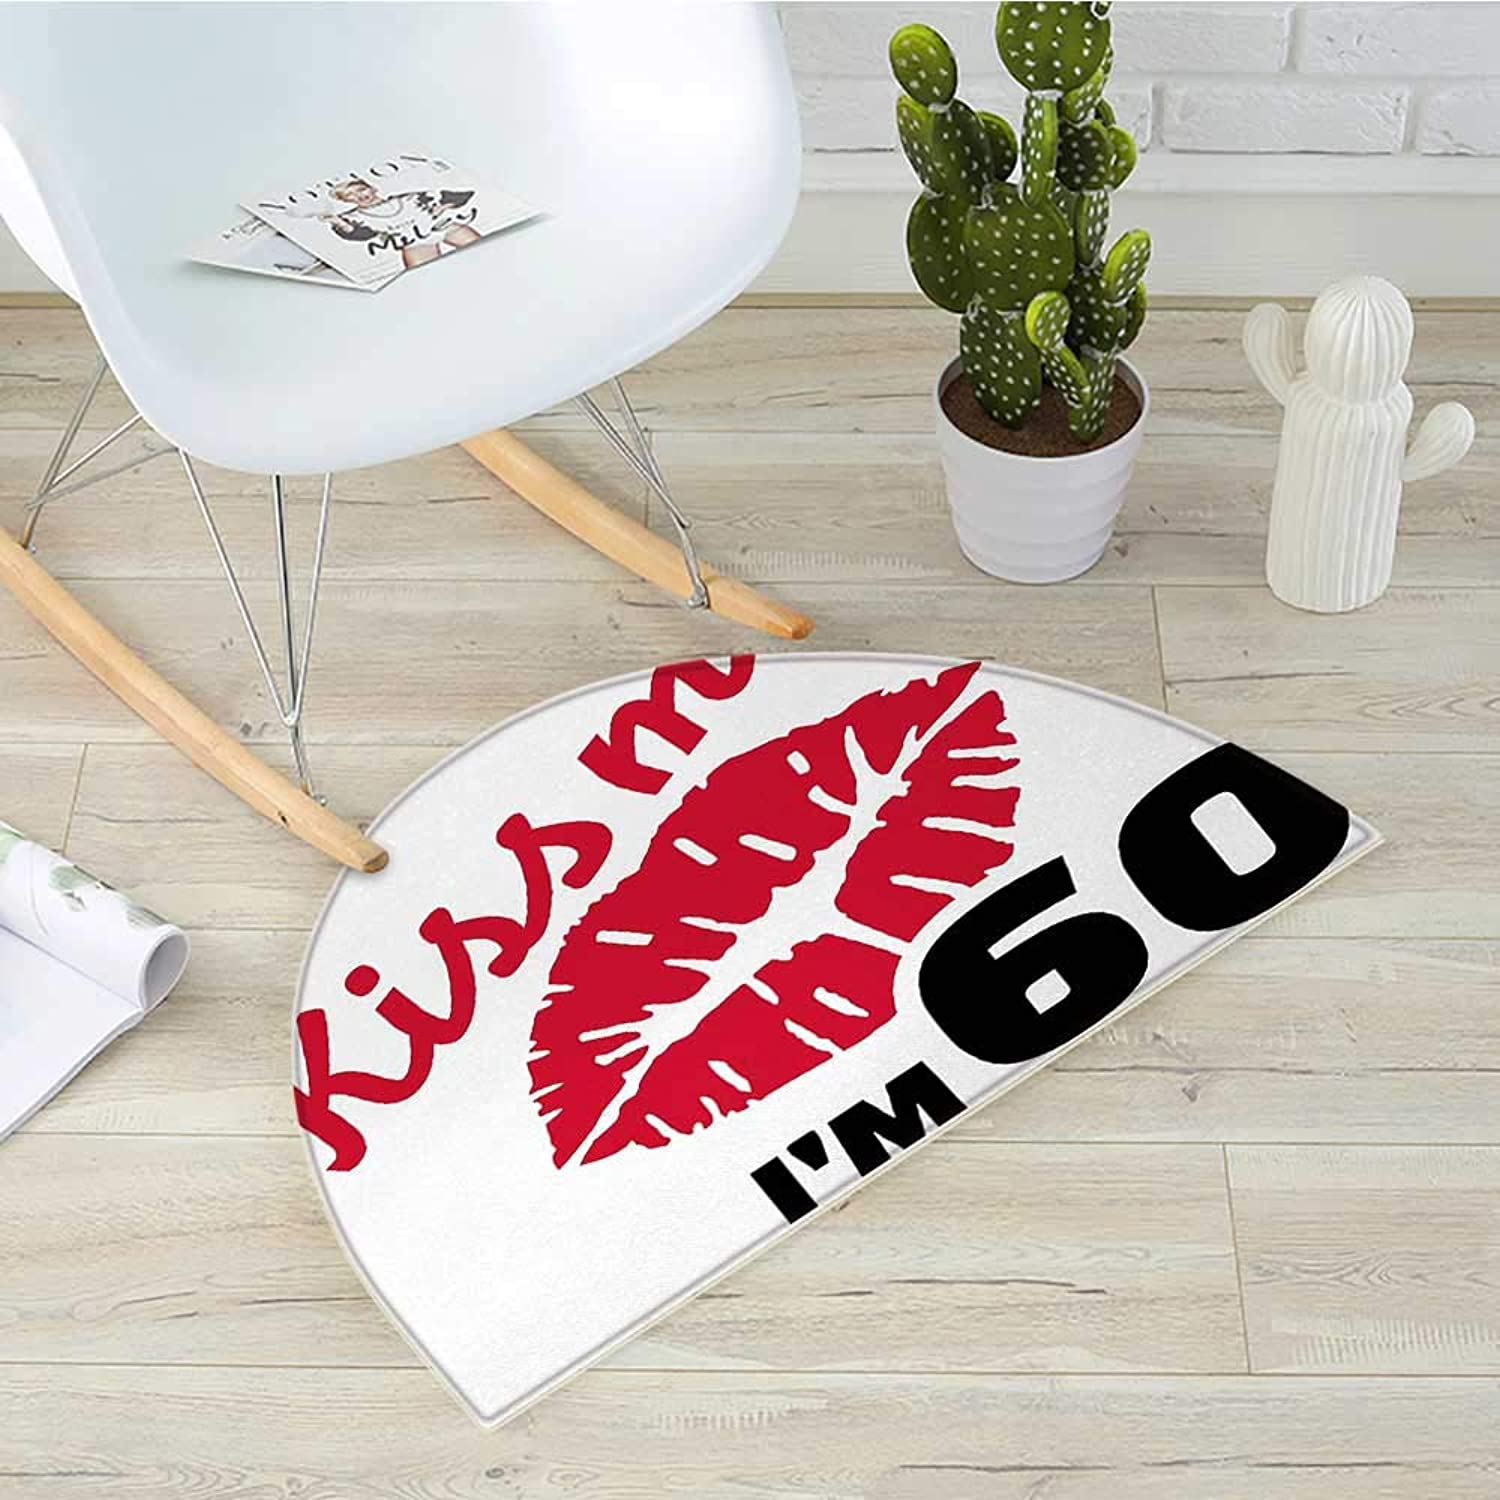 60th Birthday Half Round Door mats Hot and Sexy Party Theme with Lipstick Mark Kiss Me I am 60 Quote Image Bathroom Mat H 39.3  xD 59  Red and Black